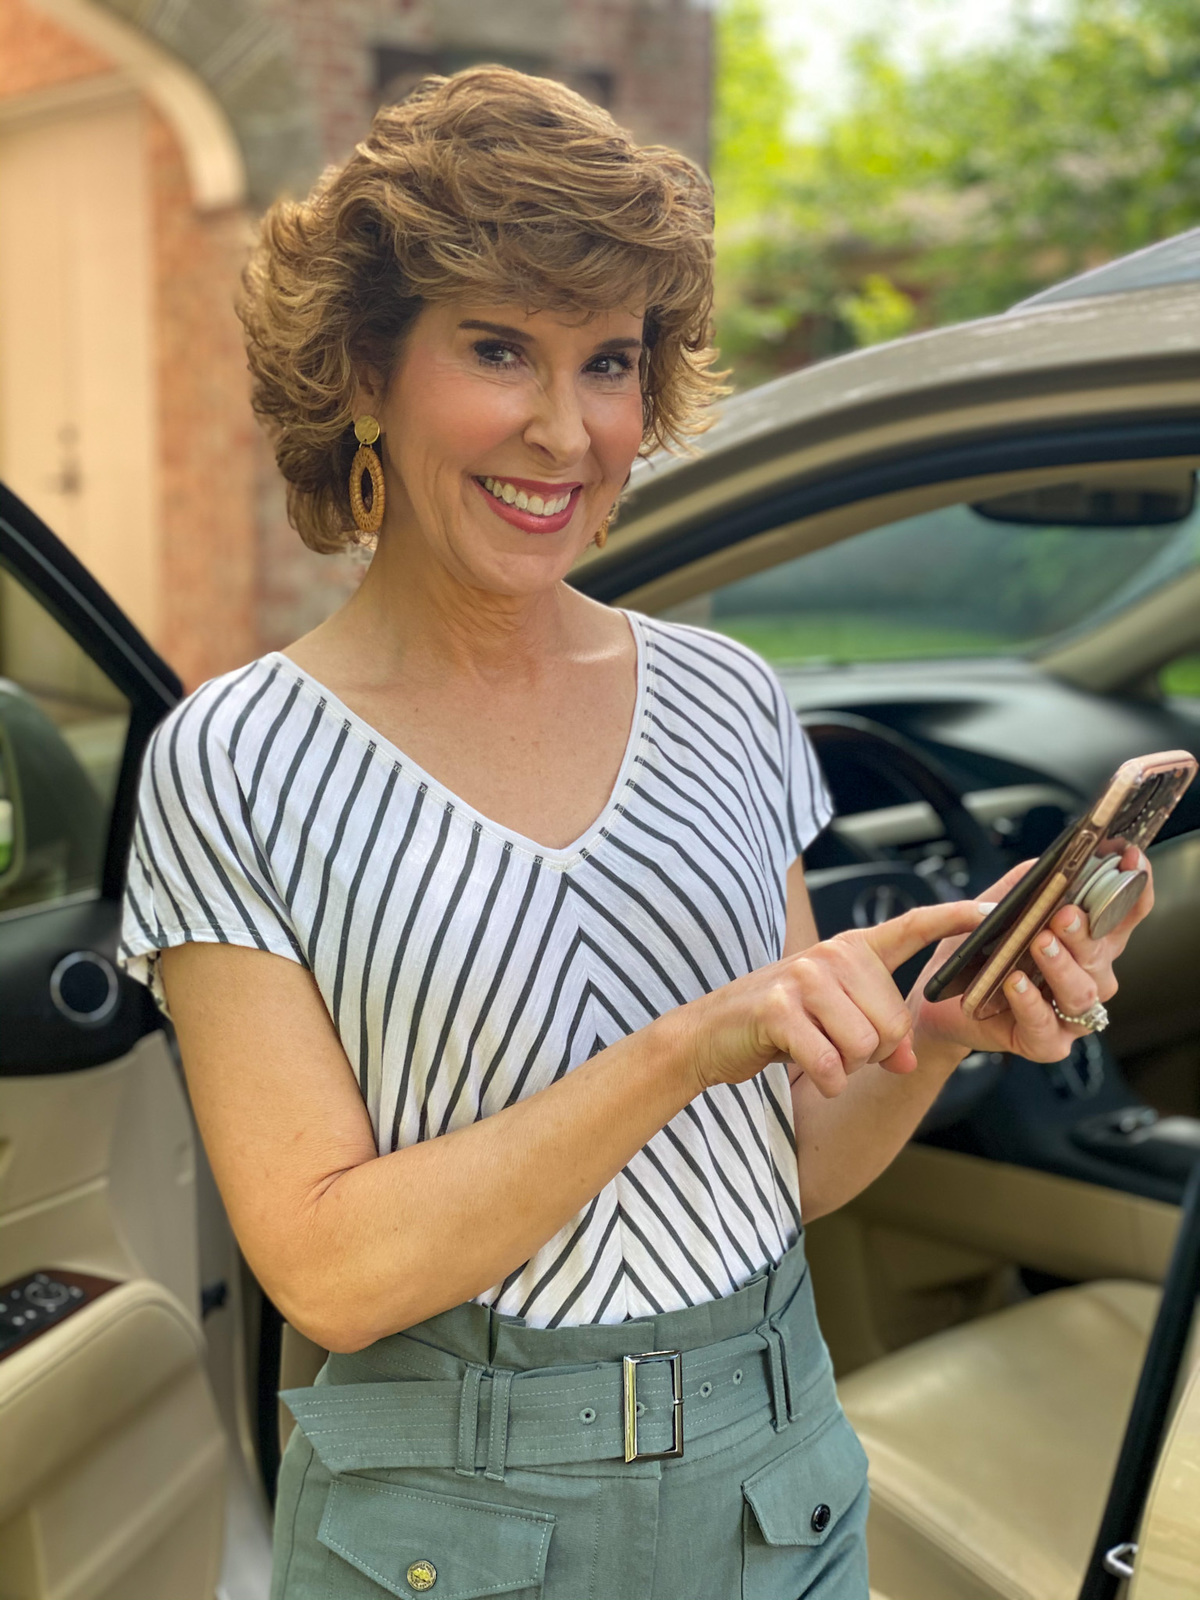 woman in green striped shirt standing by car looking at cell phone